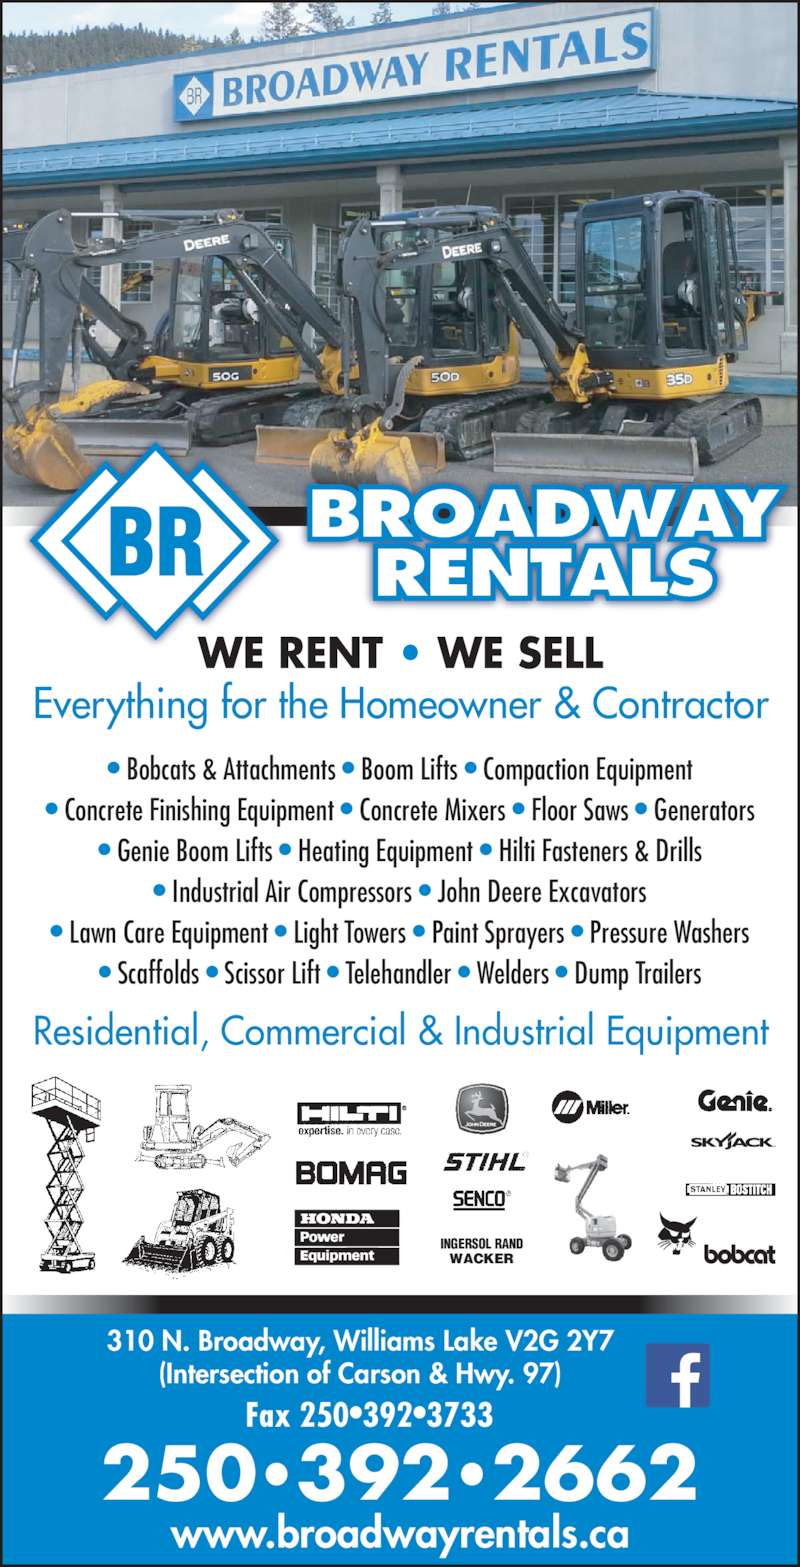 Broadway Rentals (250-392-2662) - Display Ad - www.broadwayrentals.ca 250?392?2662 WE RENT ? WE SELL Everything for the Homeowner & Contractor Residential, Commercial & Industrial Equipment WACKER ? Bobcats & Attachments ? Boom Lifts ? Compaction Equipment ? Concrete Finishing Equipment ? Concrete Mixers ? Floor Saws ? Generators ? Genie Boom Lifts ? Heating Equipment ? Hilti Fasteners & Drills ? Industrial Air Compressors ? John Deere Excavators ? Lawn Care Equipment ? Light Towers ? Paint Sprayers ? Pressure Washers ? Scaffolds ? Scissor Lift ? Telehandler ? Welders ? Dump Trailers INGERSOL RAND BR BROADWAYRENTALS 310 N. Broadway, Williams Lake V2G 2Y7 (Intersection of Carson & Hwy. 97) Fax 250?392?3733